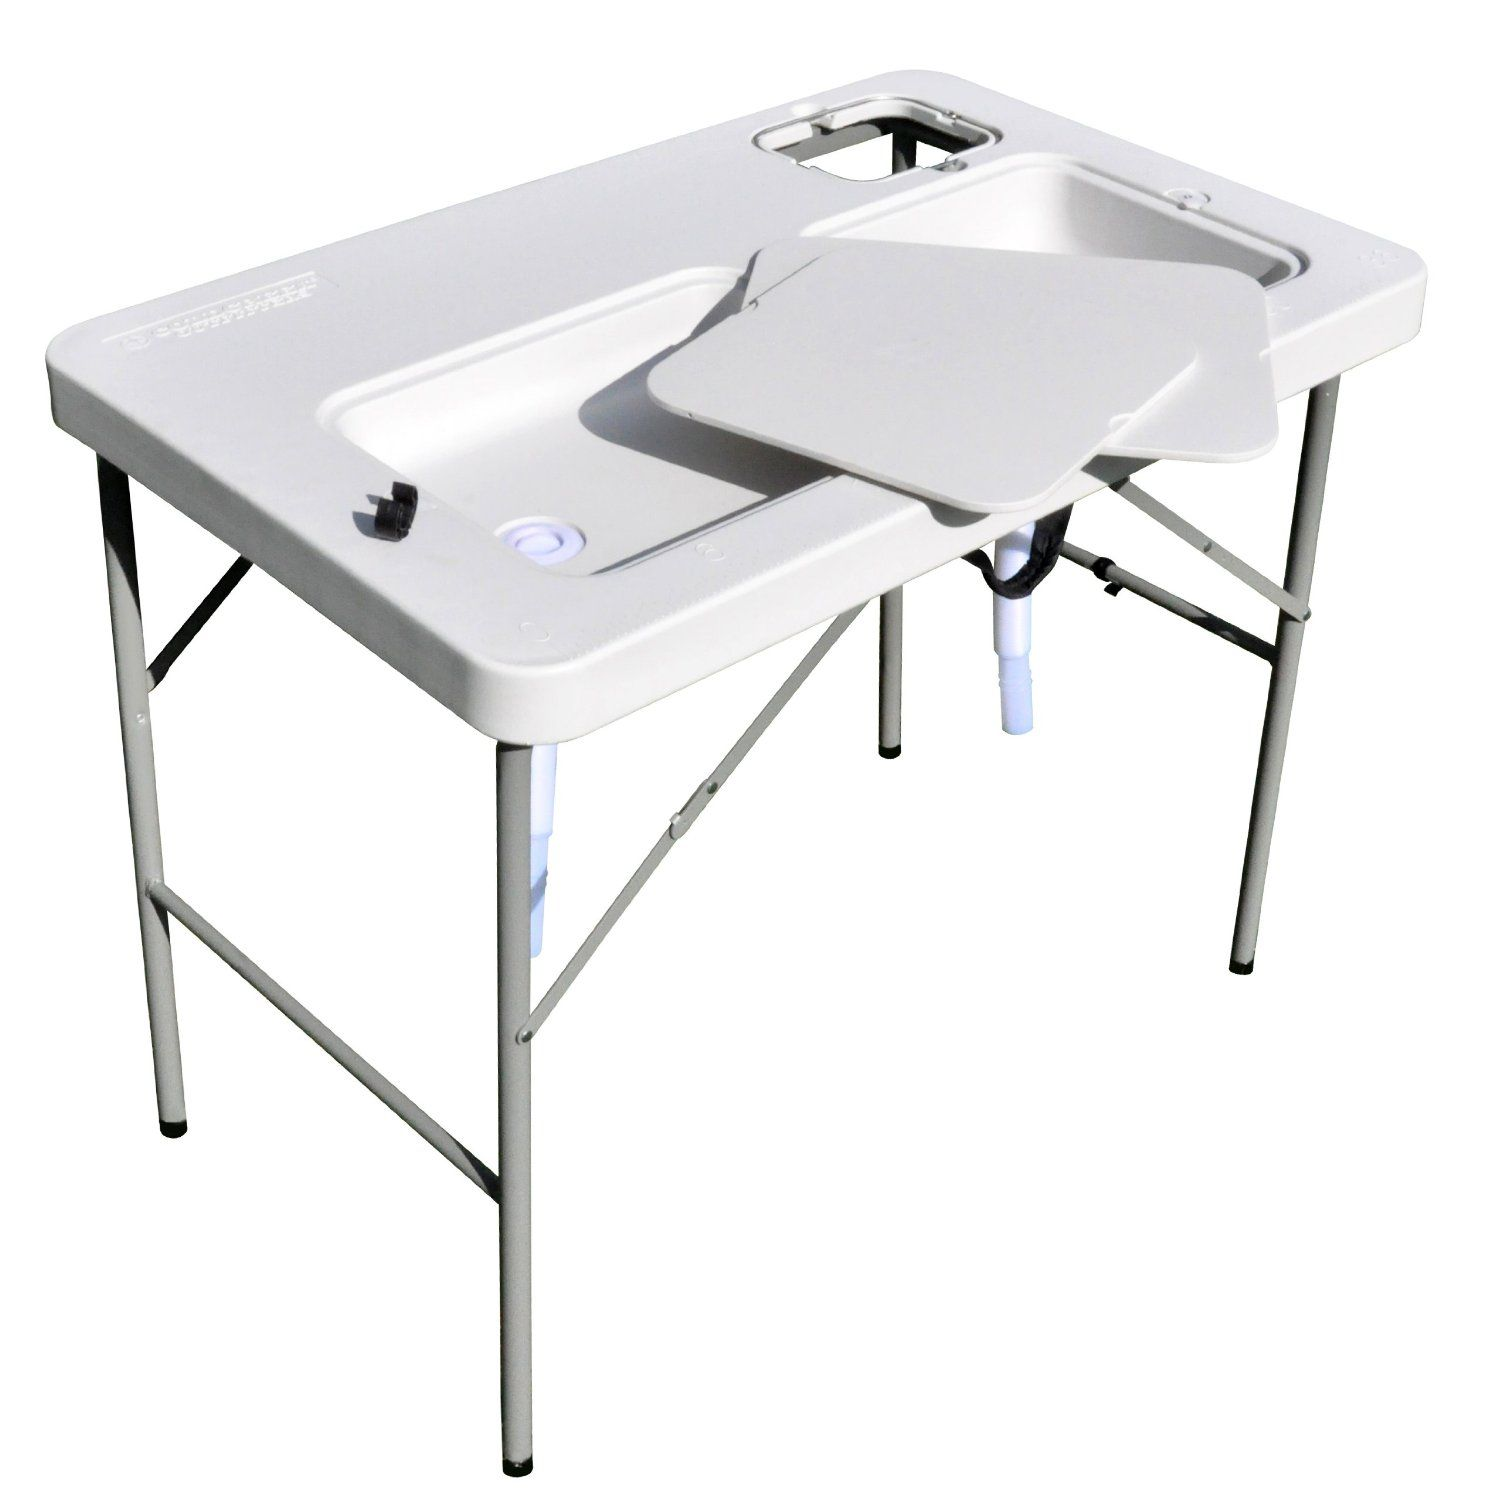 3 best portable fish cleaning tables